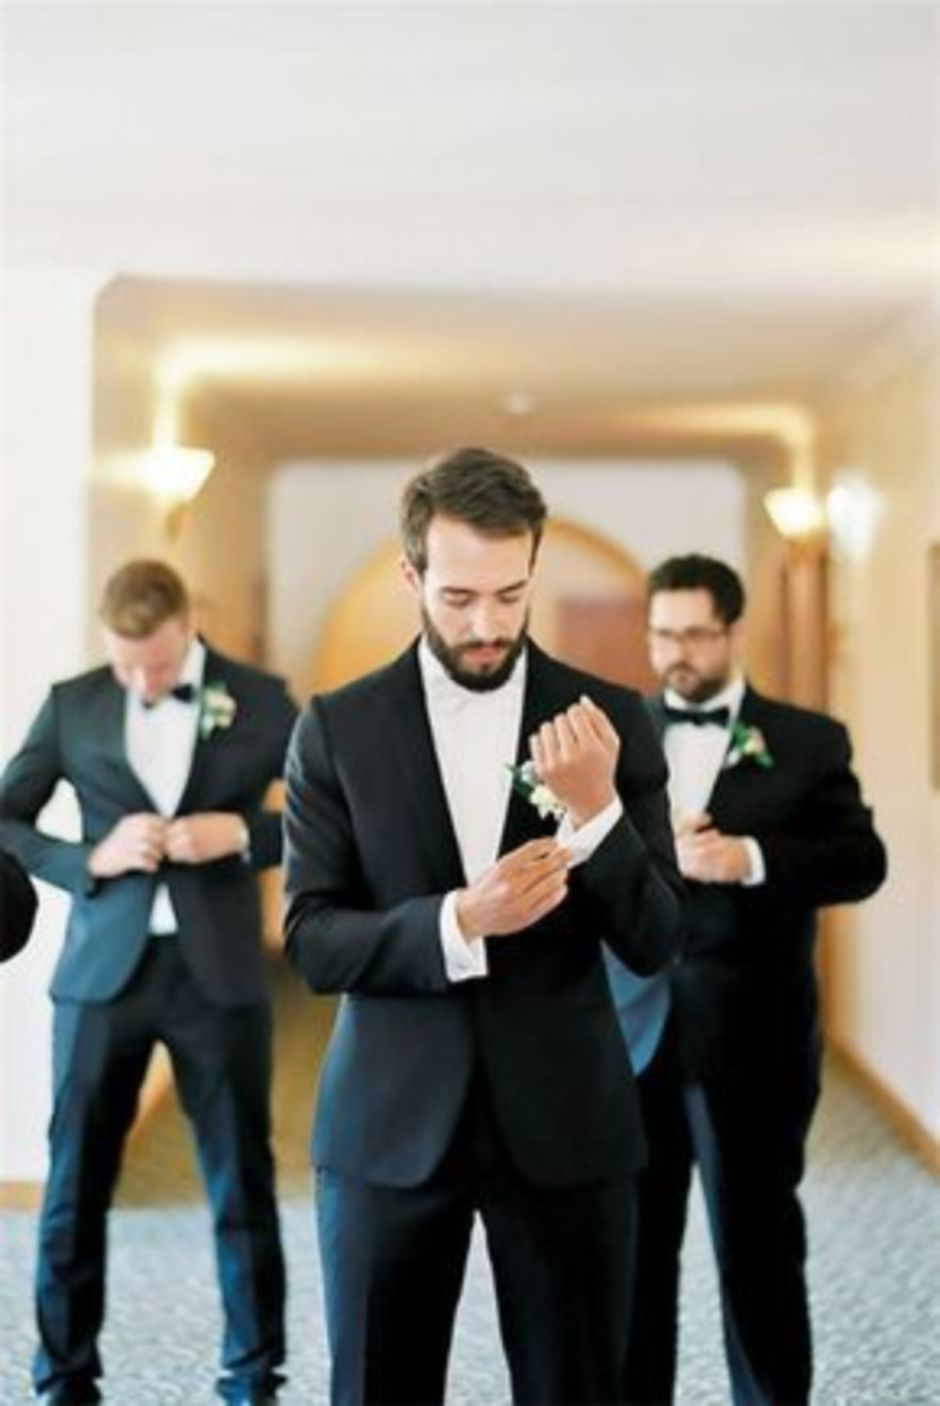 100+ Groomsmen Photos Poses Ideas You Can't Miss 18